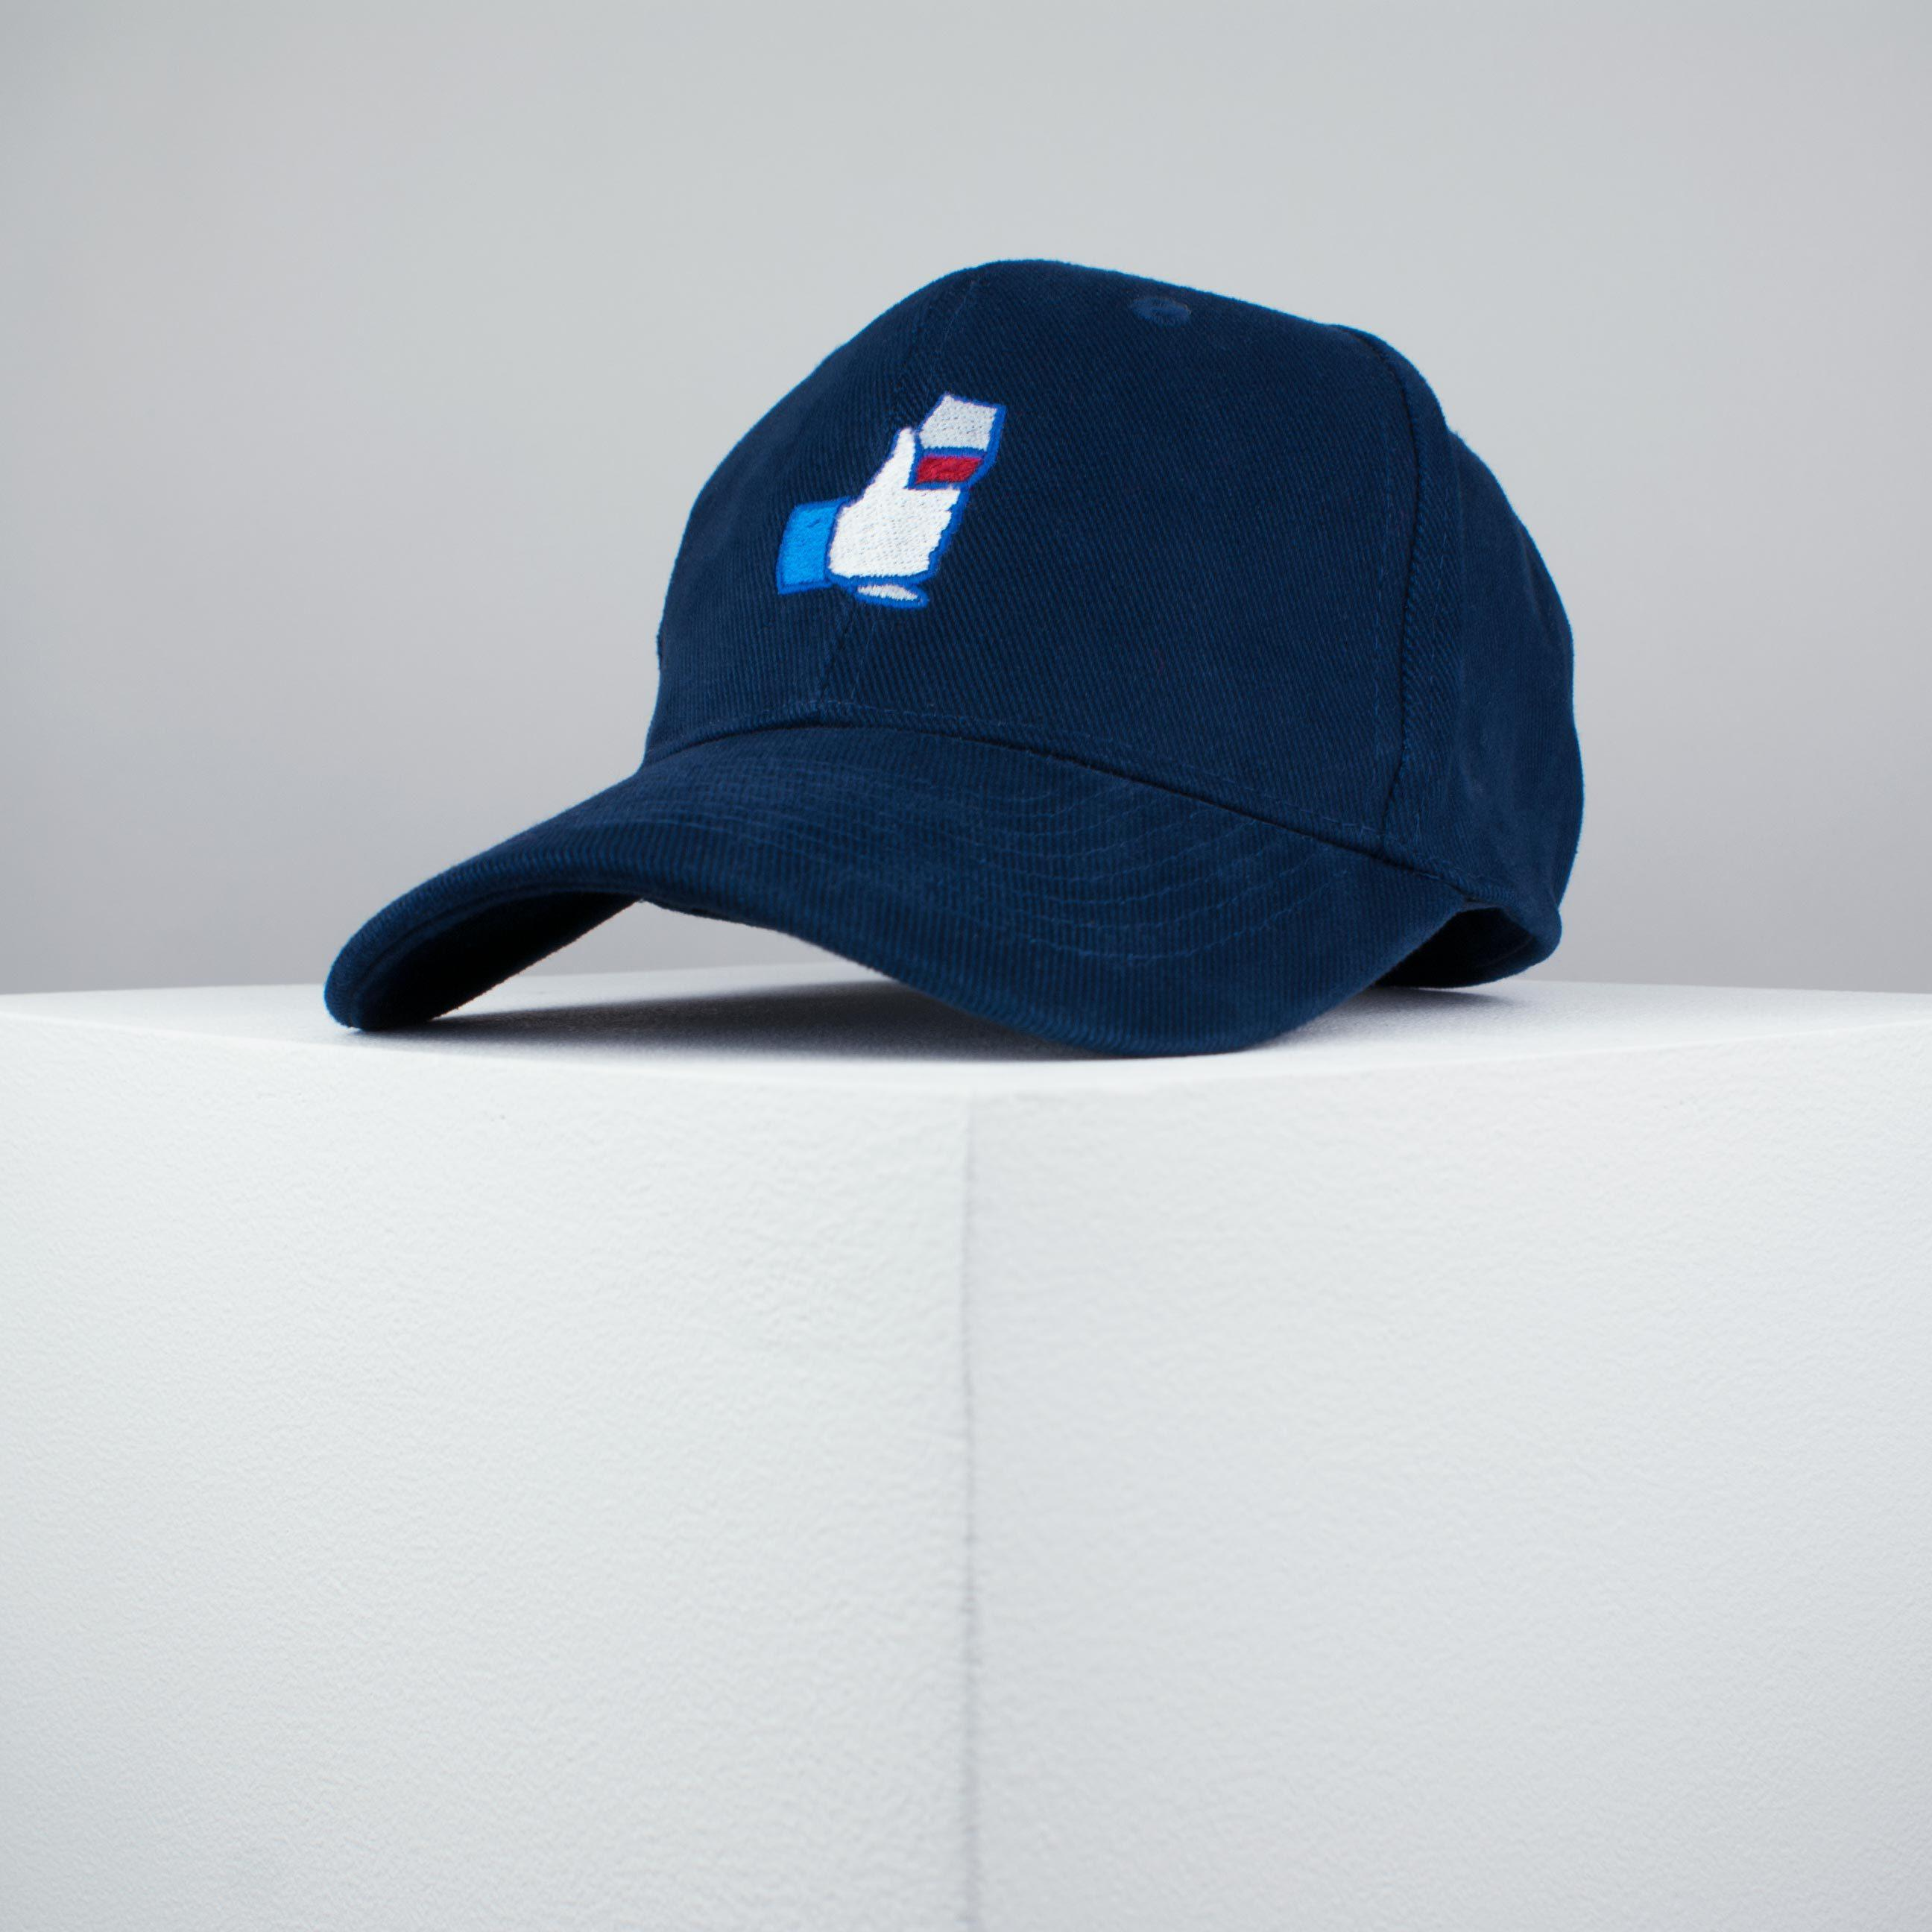 ... Like wine embroidered baseball cap navy   wine   patches   vegan    embroidery   patch ... 25bfe191ad9d